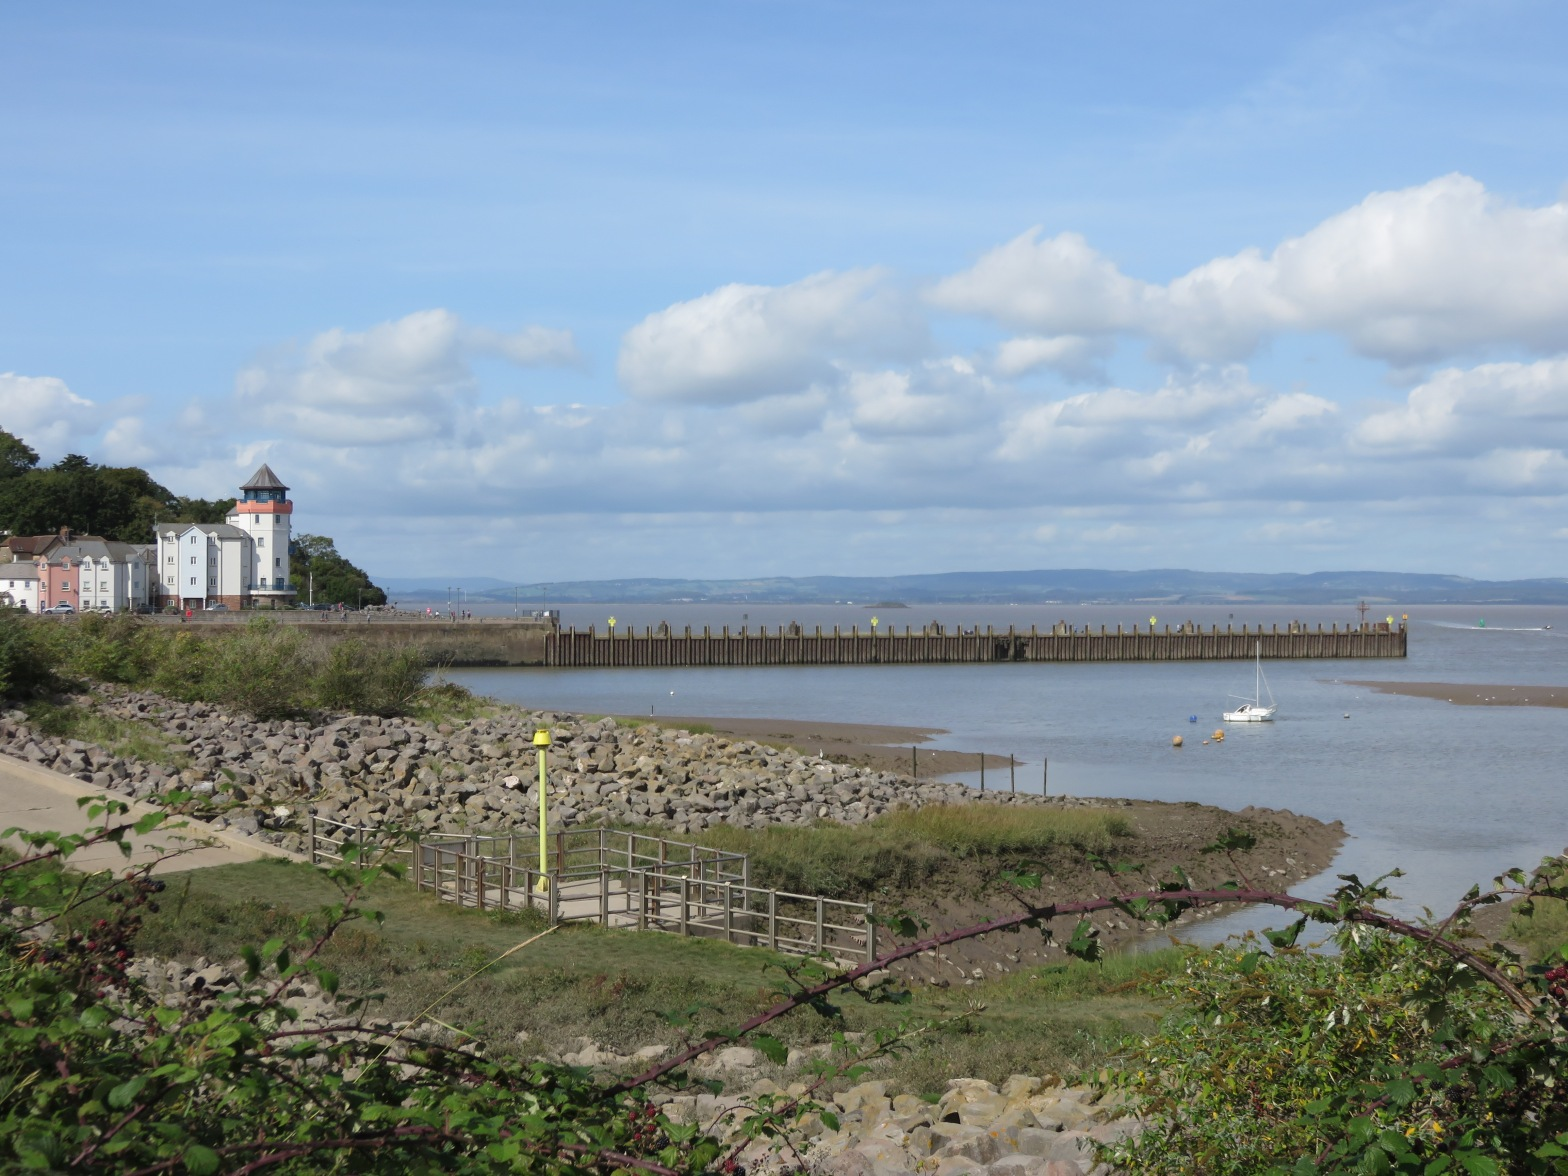 Looking back towards The Barbican and Portishead Pier from The Rhyne